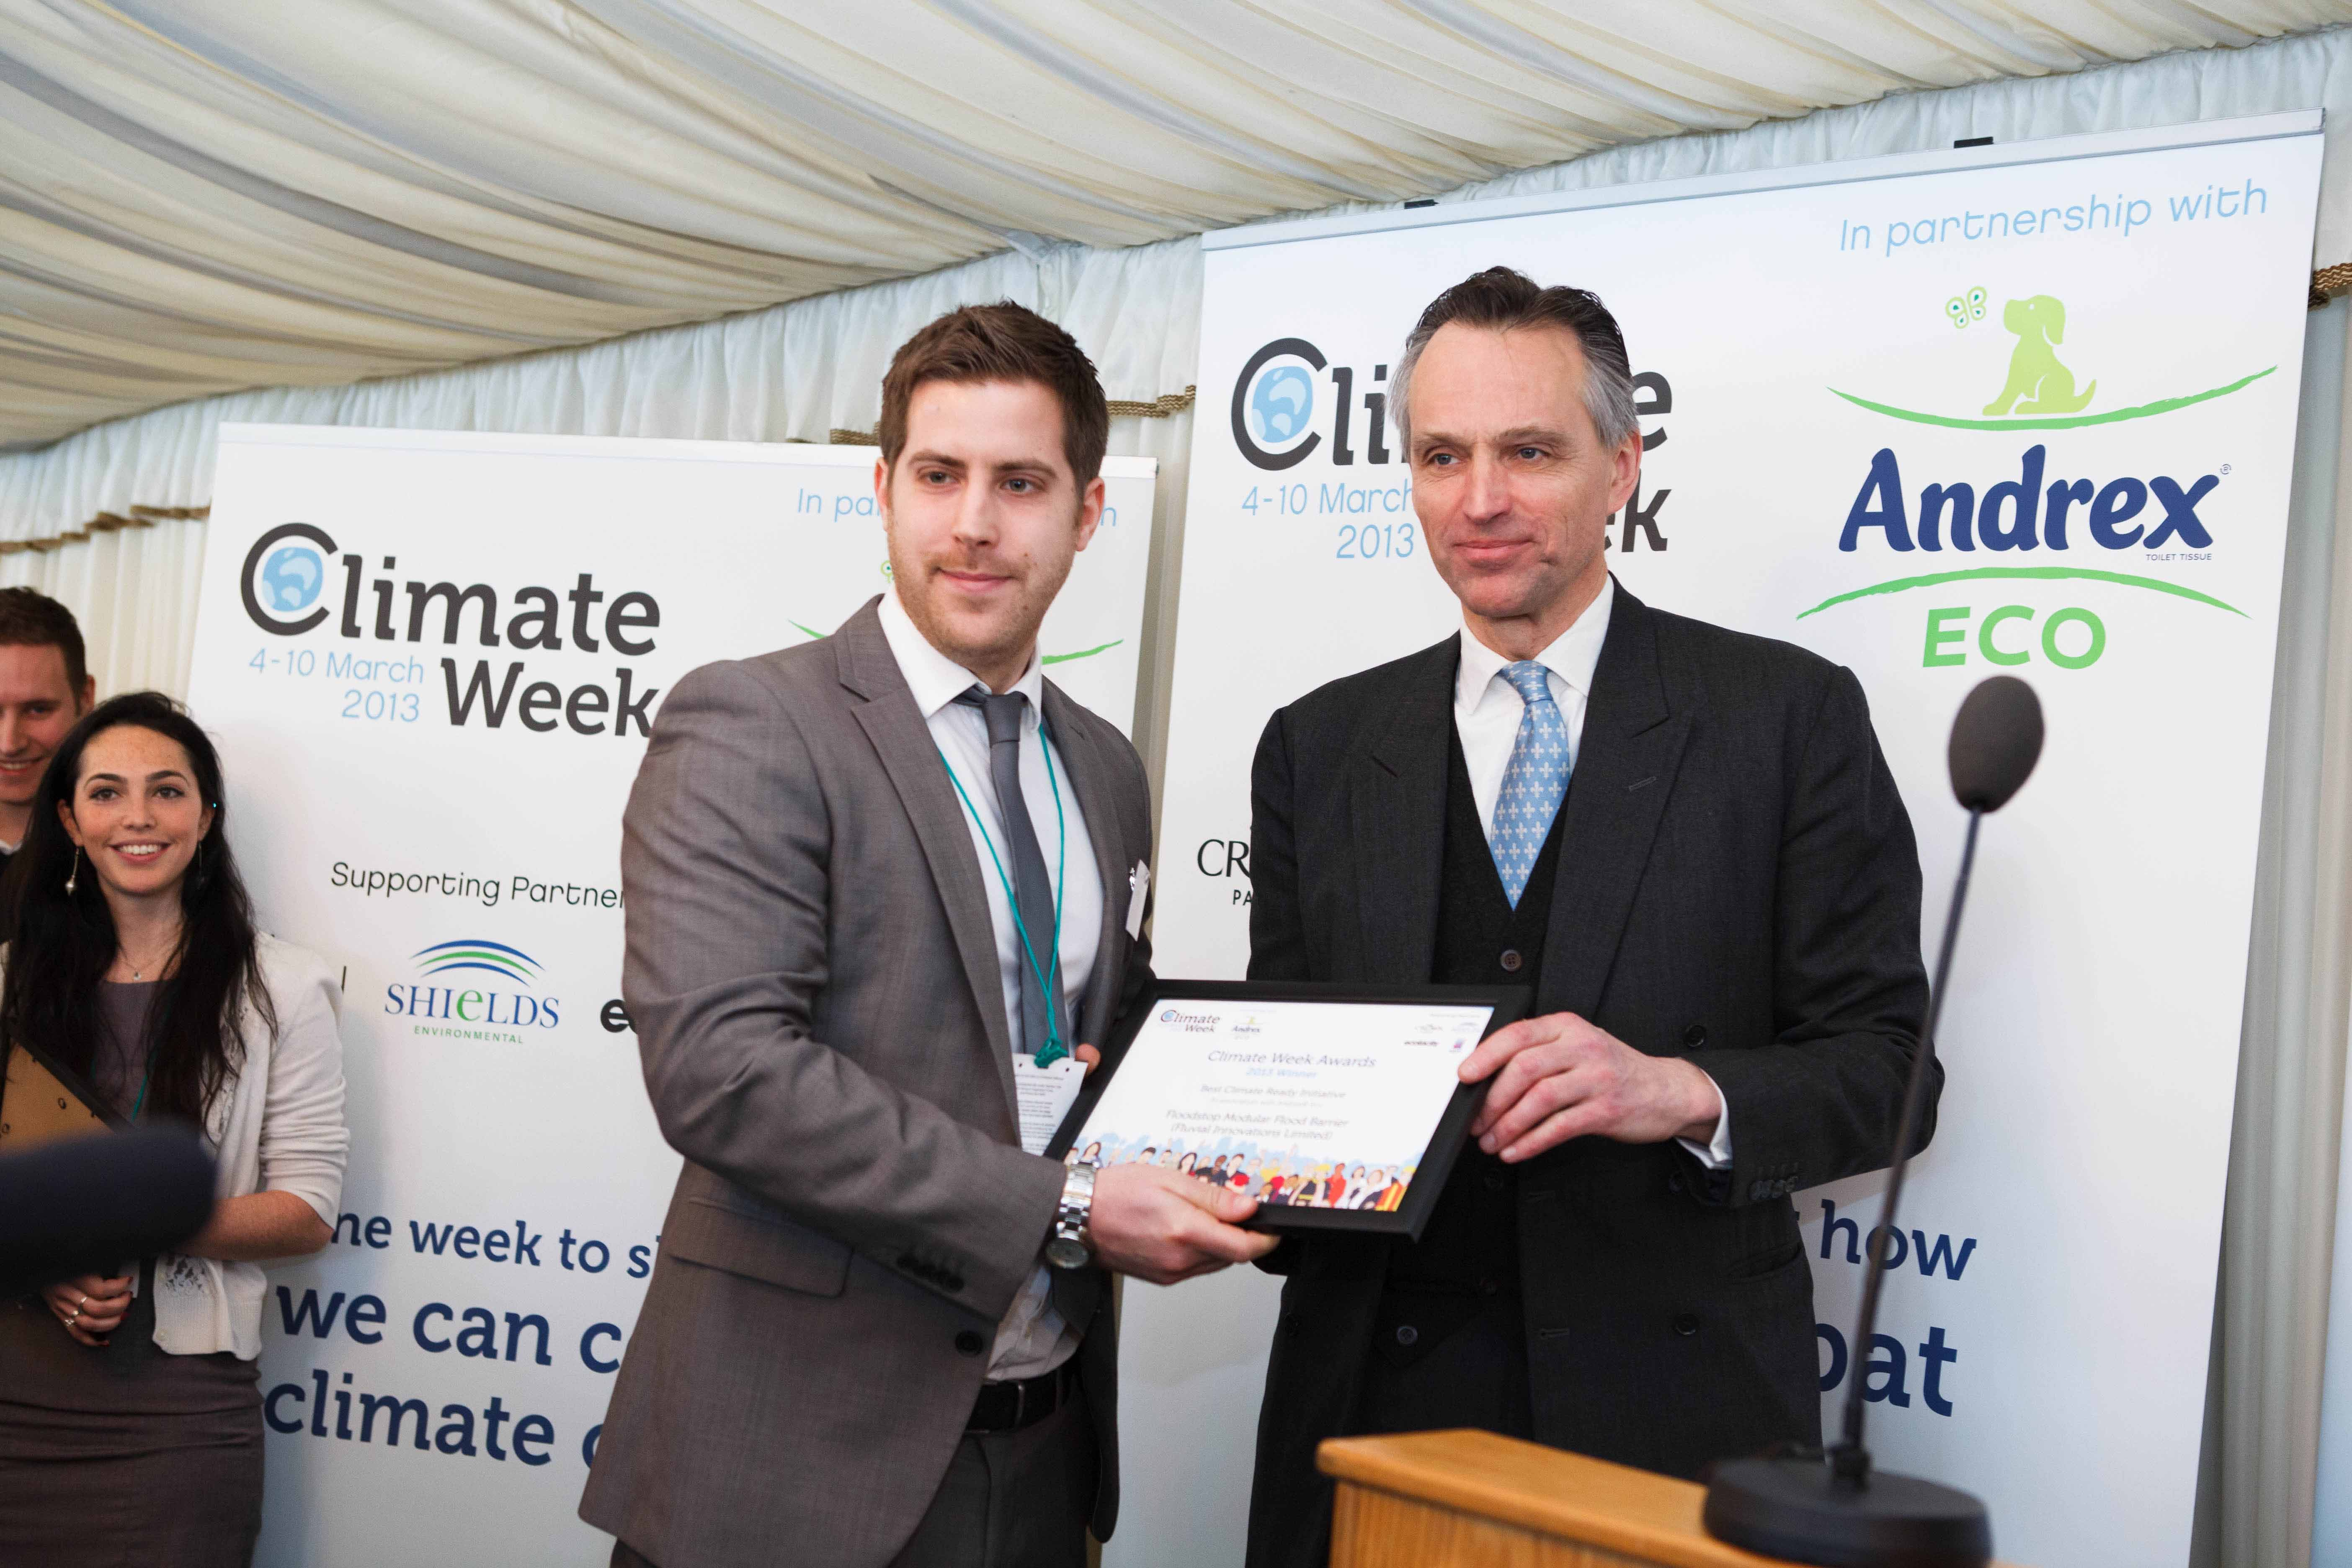 climate week official